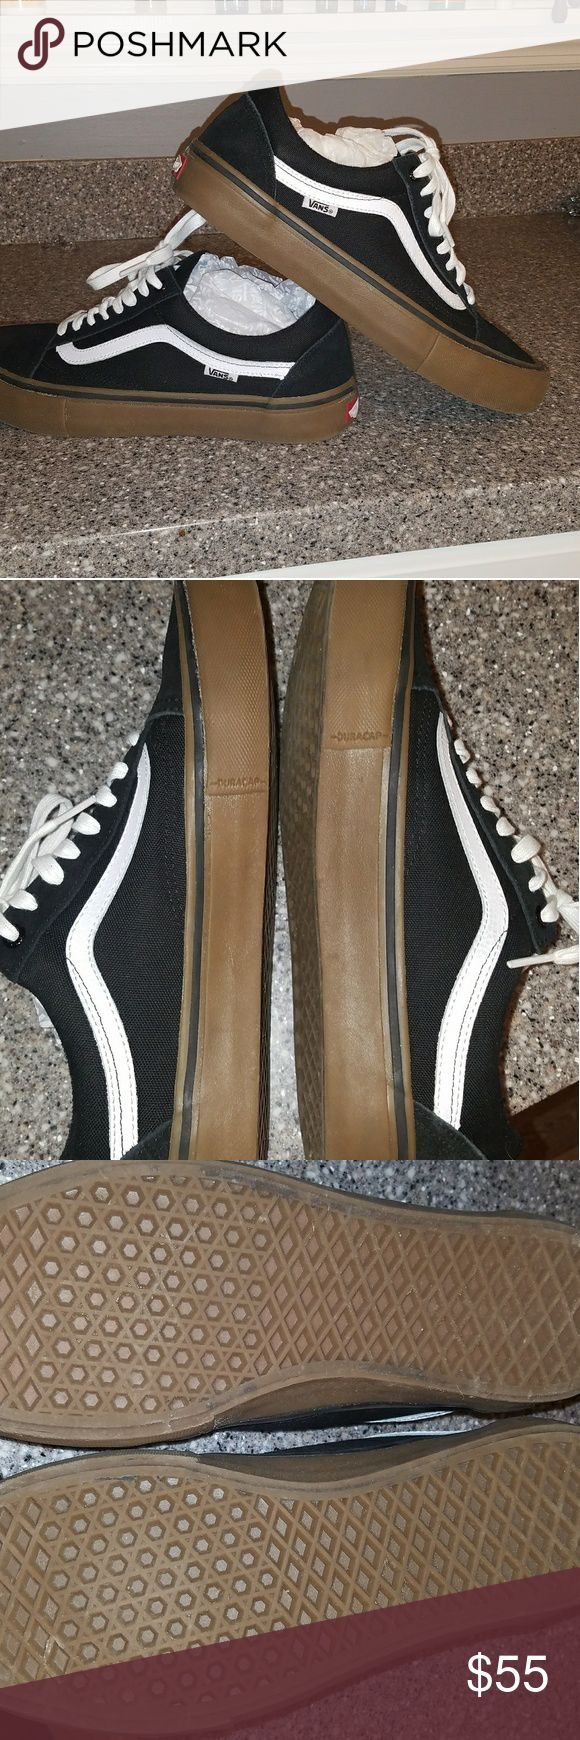 Vans Old Skool Pro skate shoes Brand New WOT. Worn to the car and back inside. Too small for my husband. Comes in box with black laces. Vans Shoes Athletic Shoes